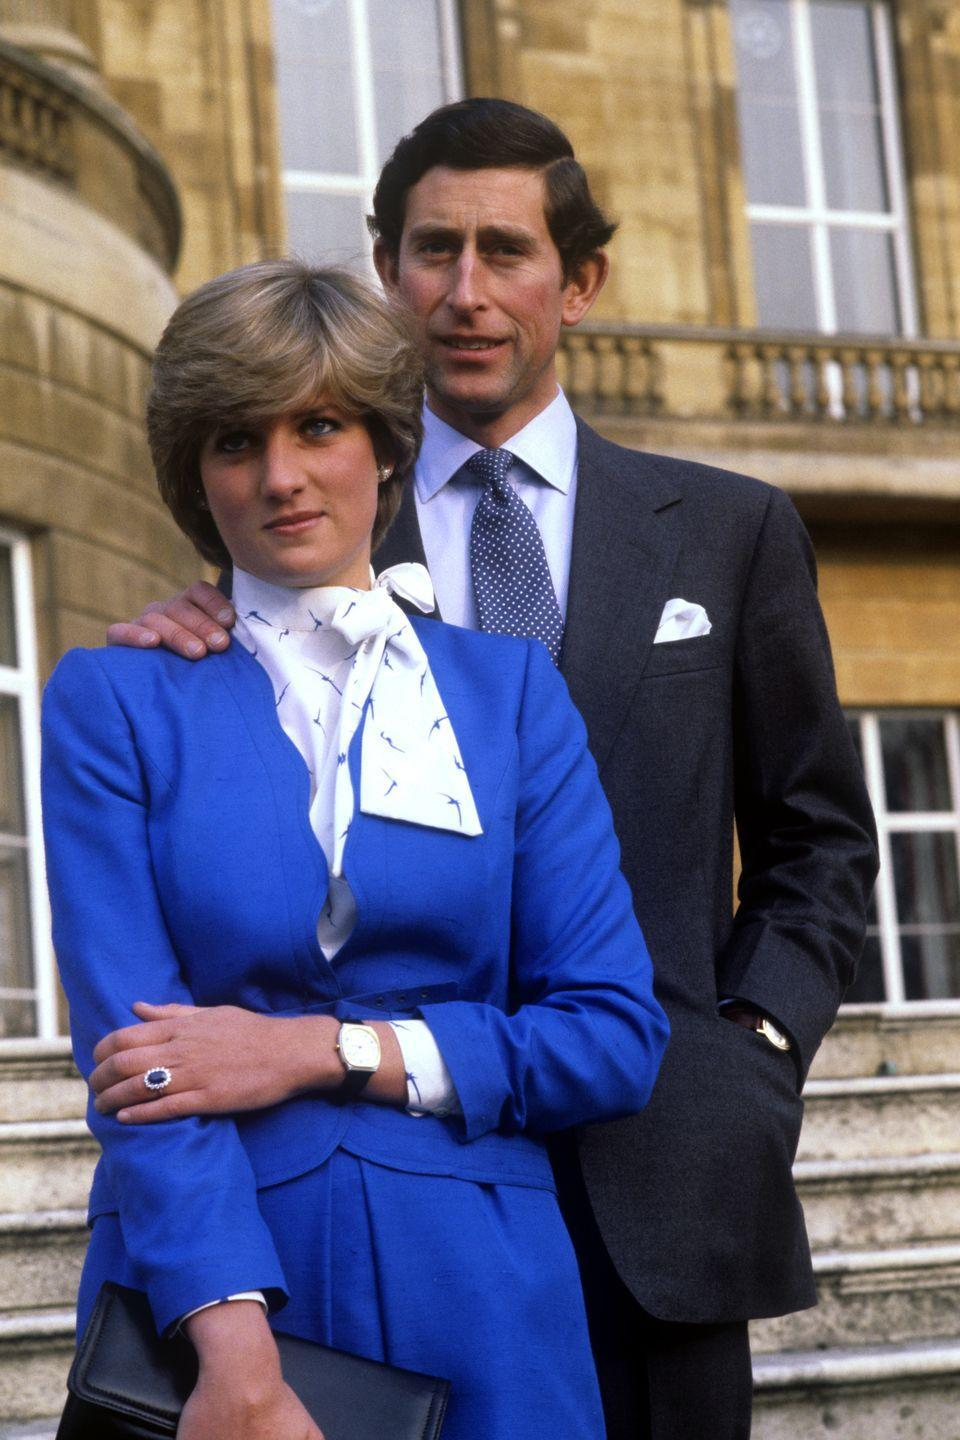 """<p>Just six months after their engagement, the couple married in a famously <a href=""""https://www.townandcountrymag.com/the-scene/weddings/a18205641/princess-diana-prince-charles-wedding/"""" rel=""""nofollow noopener"""" target=""""_blank"""" data-ylk=""""slk:lavish royal wedding at London's St. Paul's Cathedral"""" class=""""link rapid-noclick-resp"""">lavish royal wedding at London's St. Paul's Cathedral</a>. In total, the pair began dating and were married within roughly one year. </p>"""